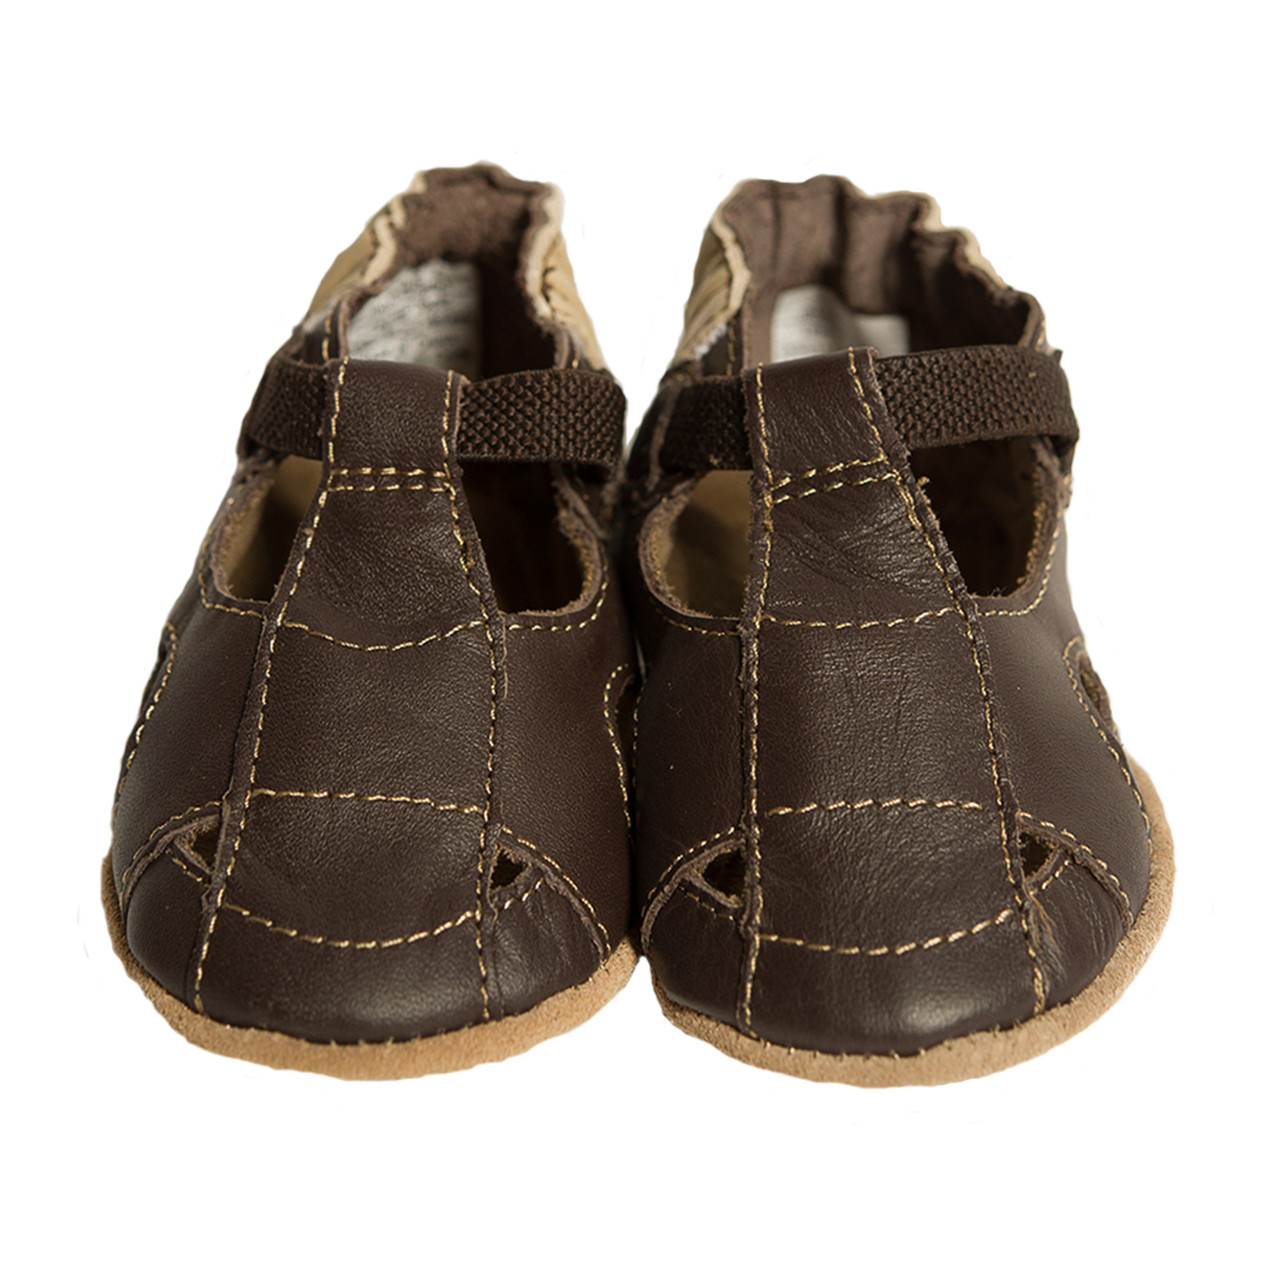 Fisherman Sandal Baby Shoes, Brown, Soft Soles - Robeez